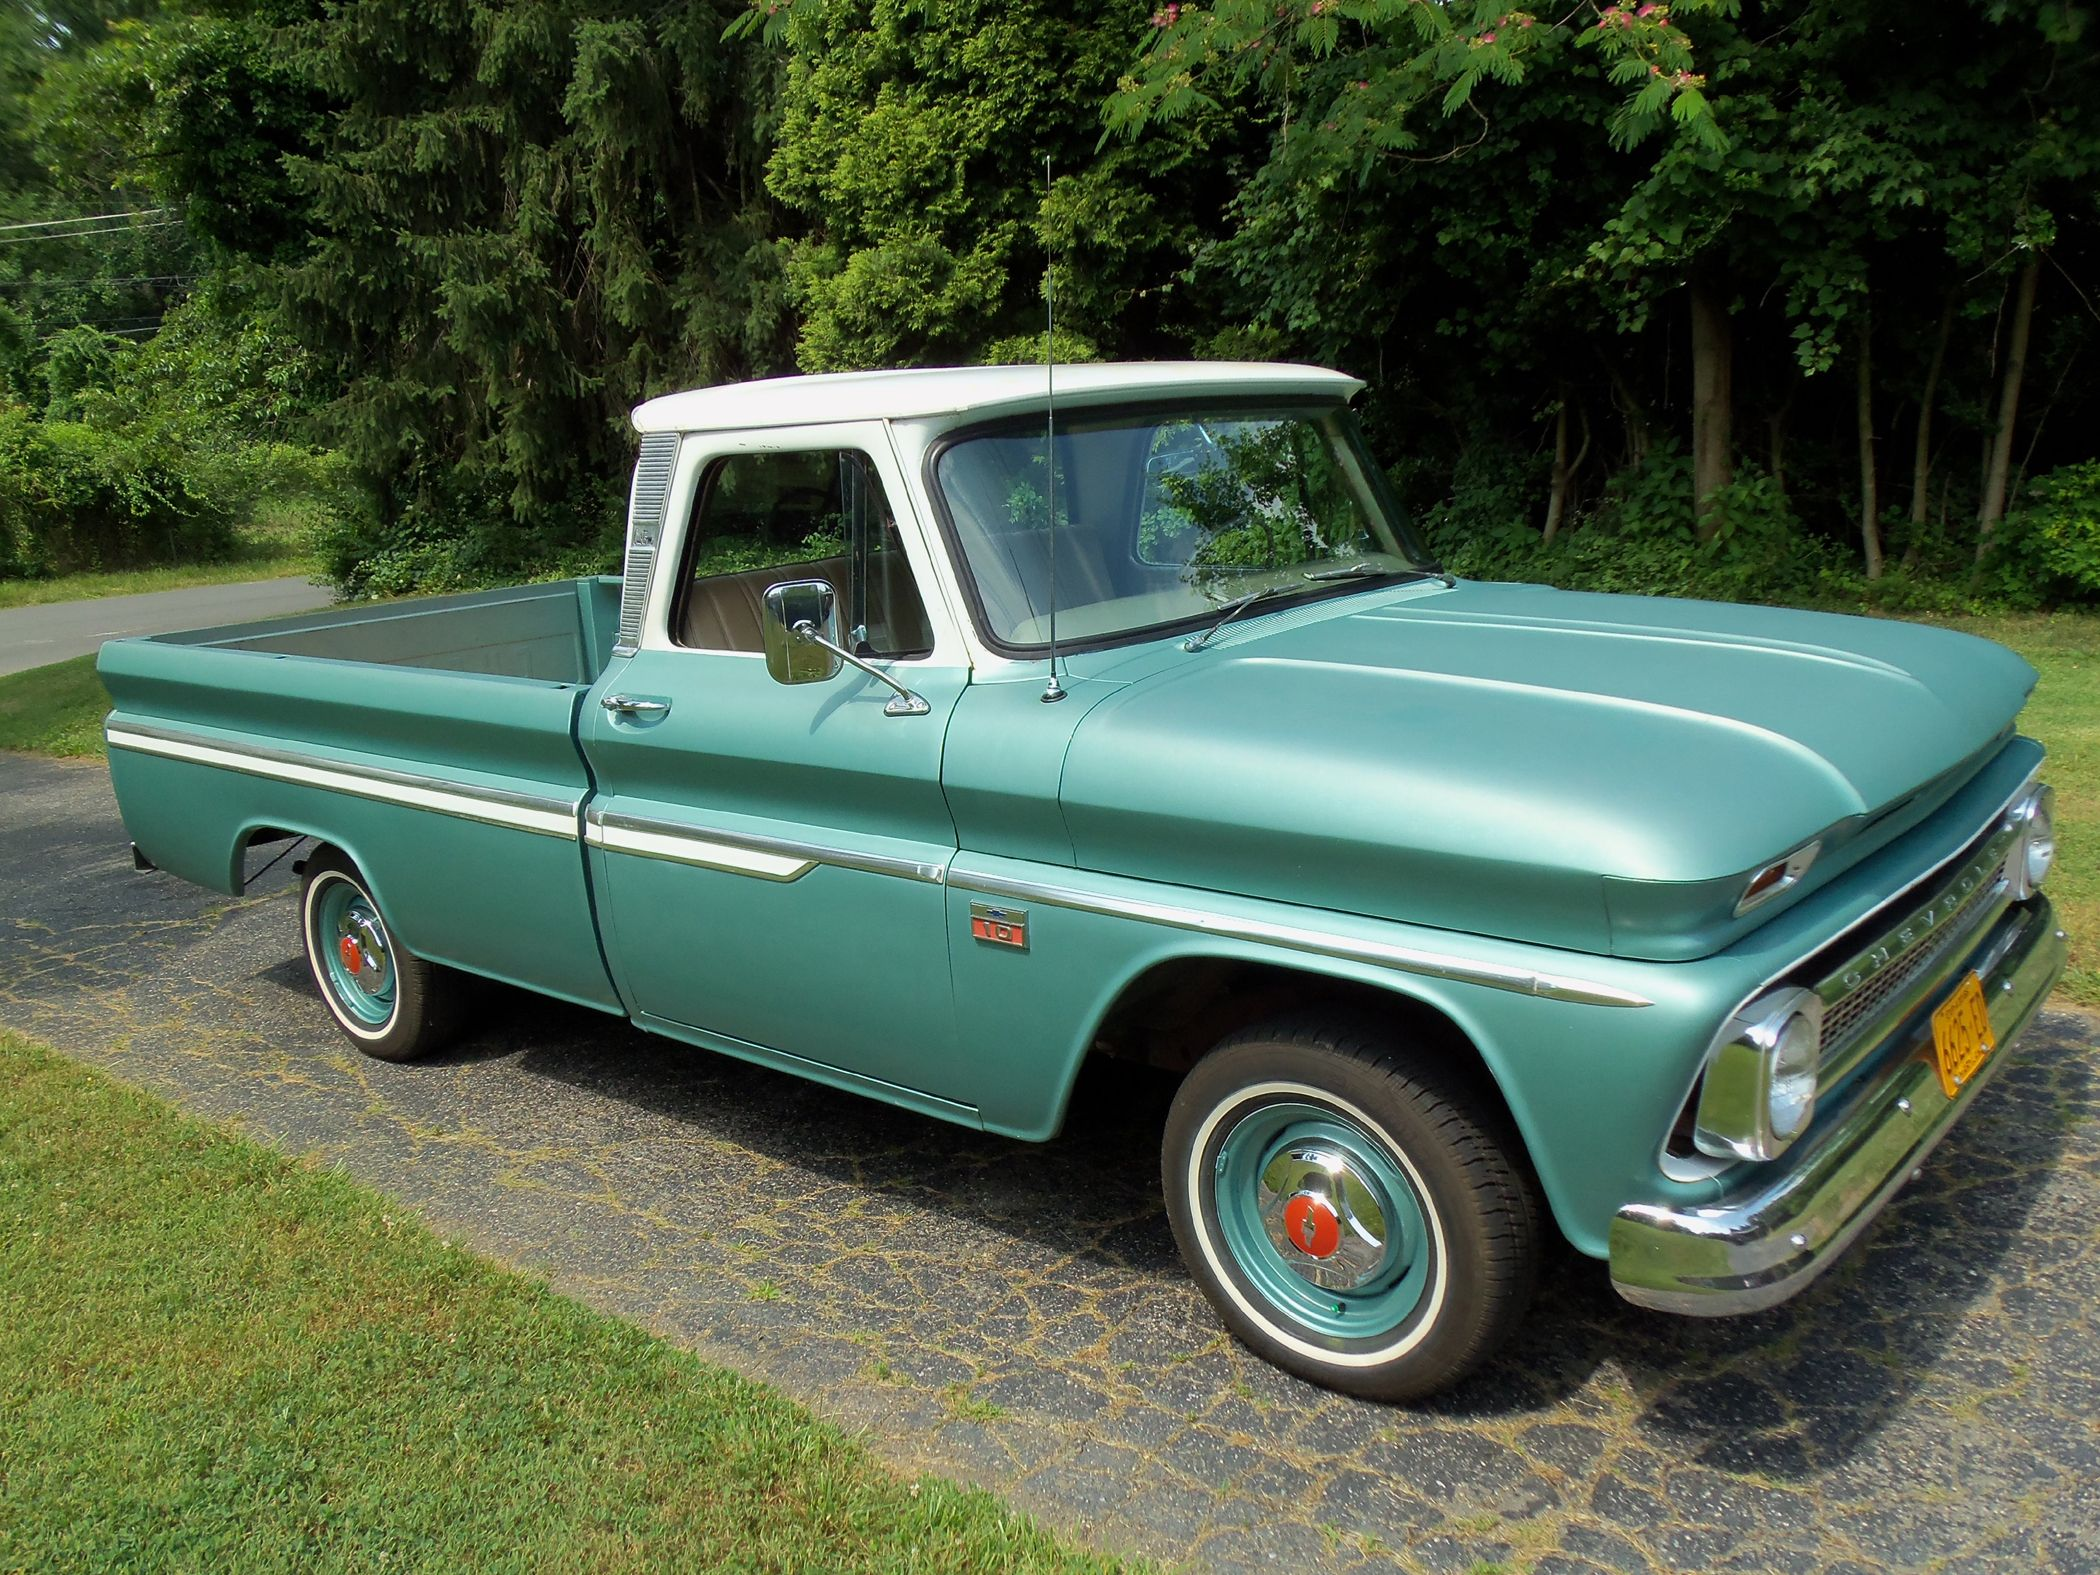 antique pickup trucks | 1966 Chevy C-10 Custom Pickup Truck in ...